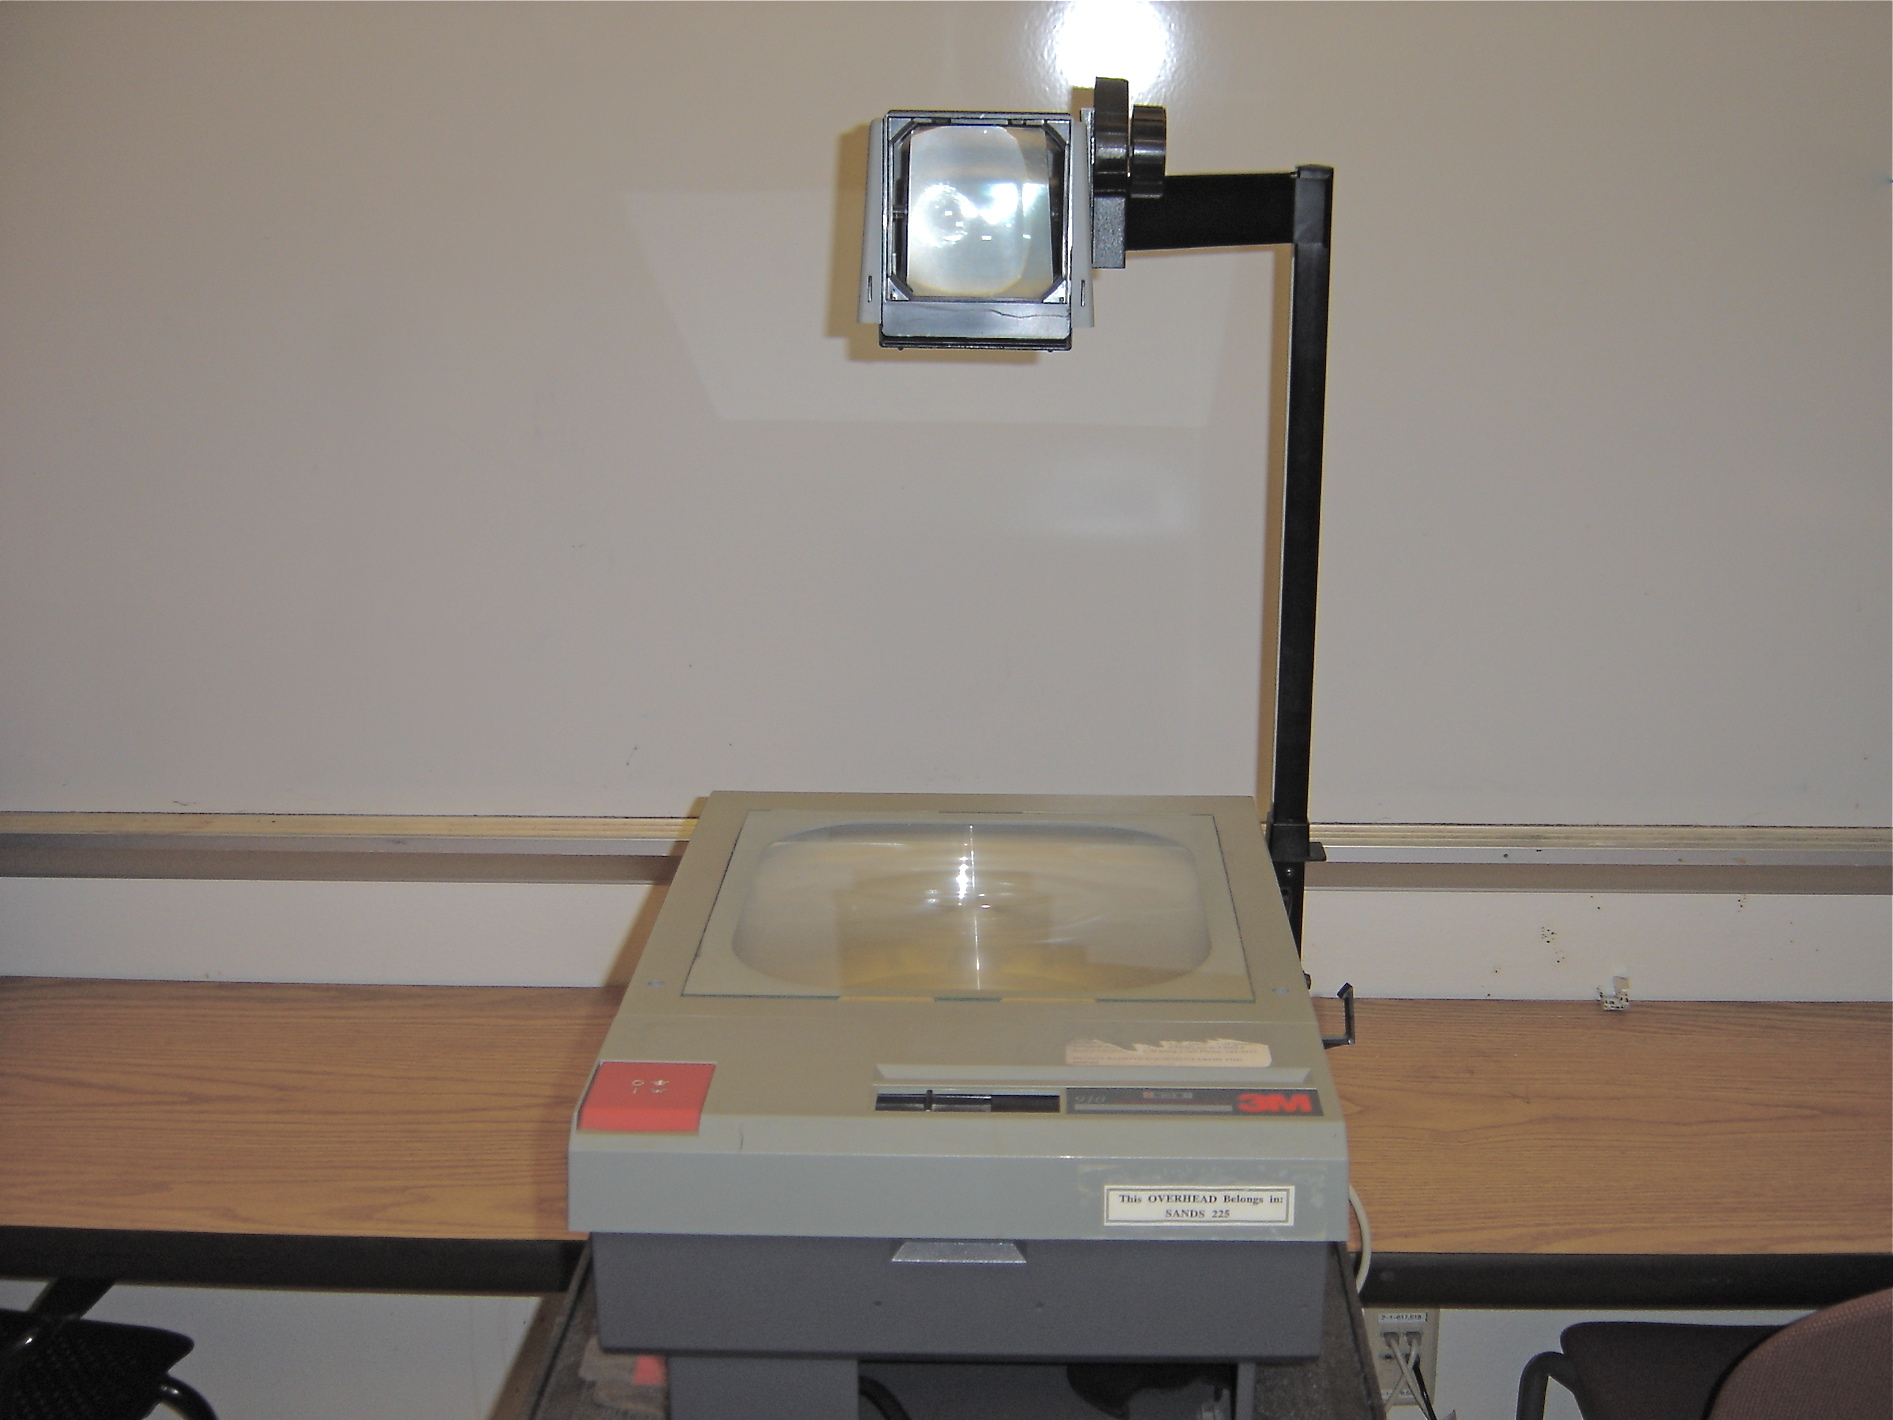 Overhead projector meddic for Overhead project